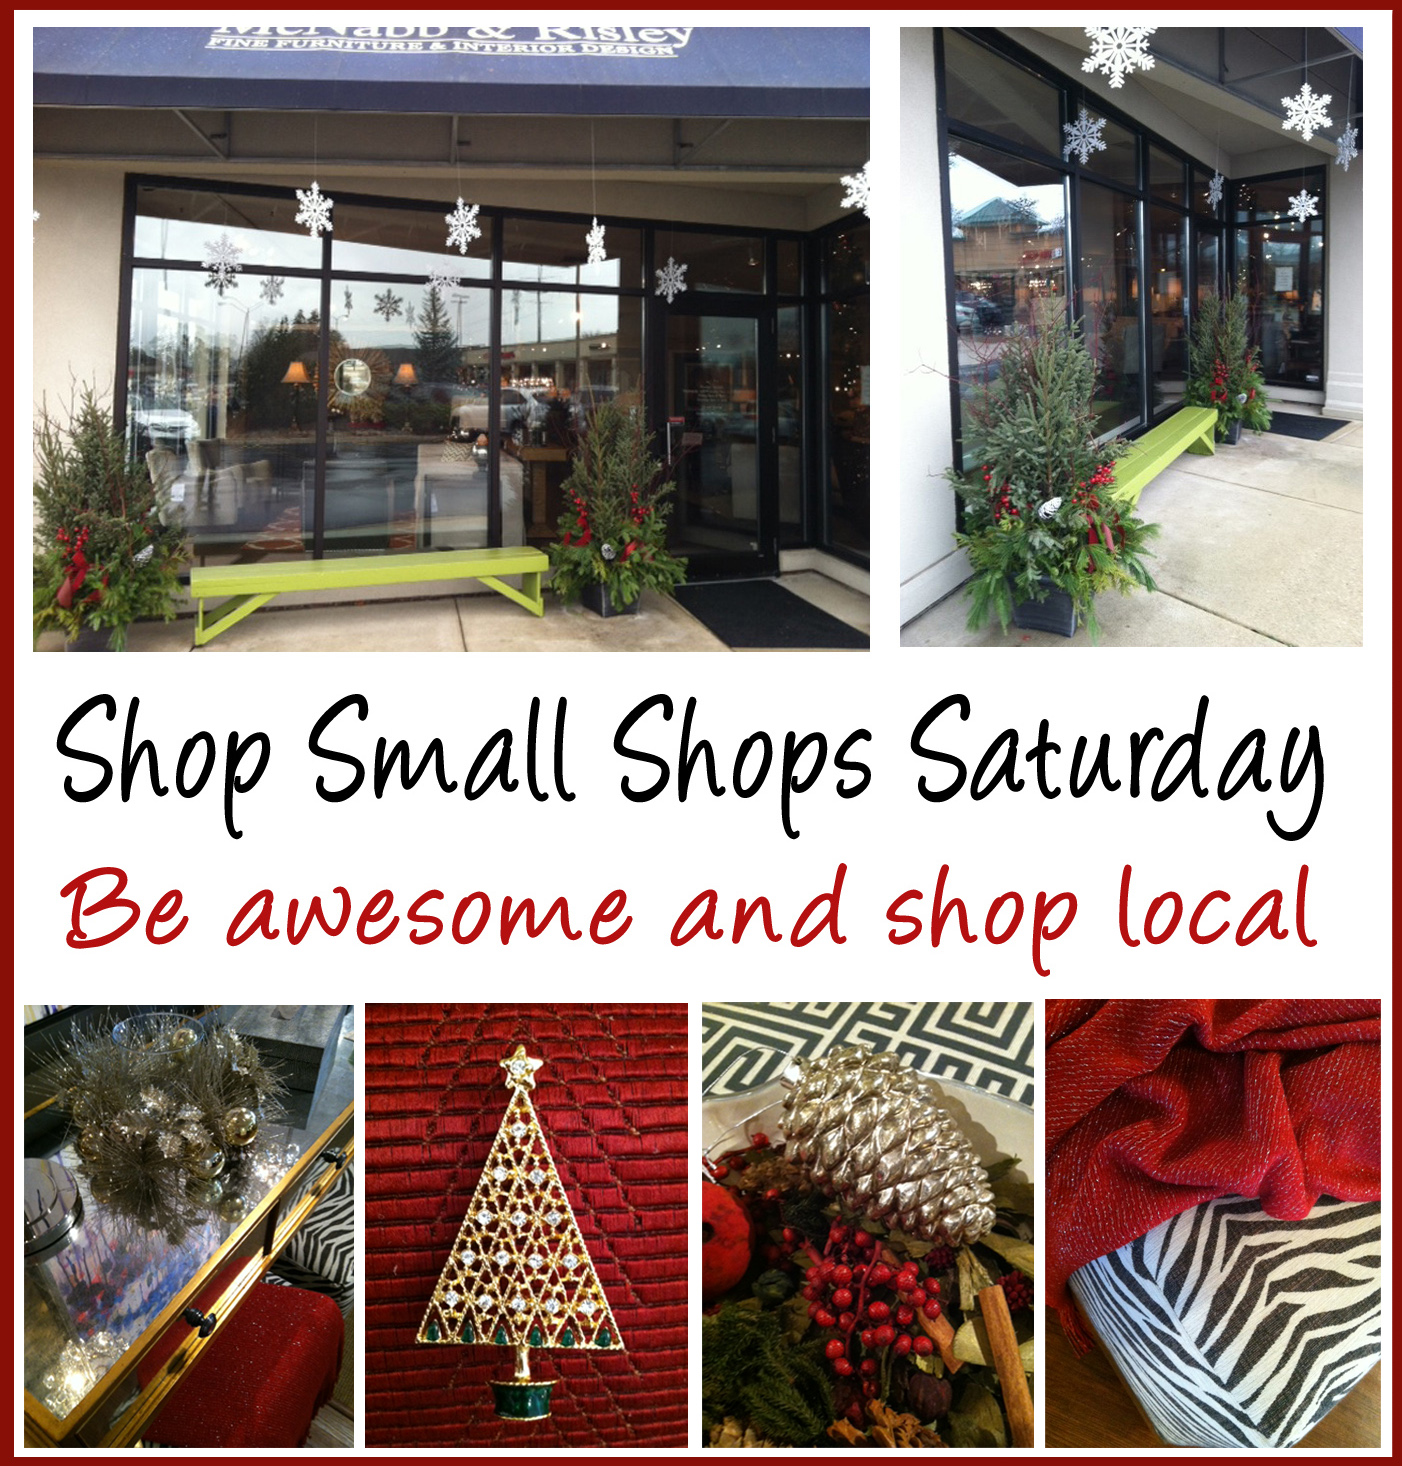 Change your world for the better and shop local on Small Shop Saturday! - McNabb & Risley